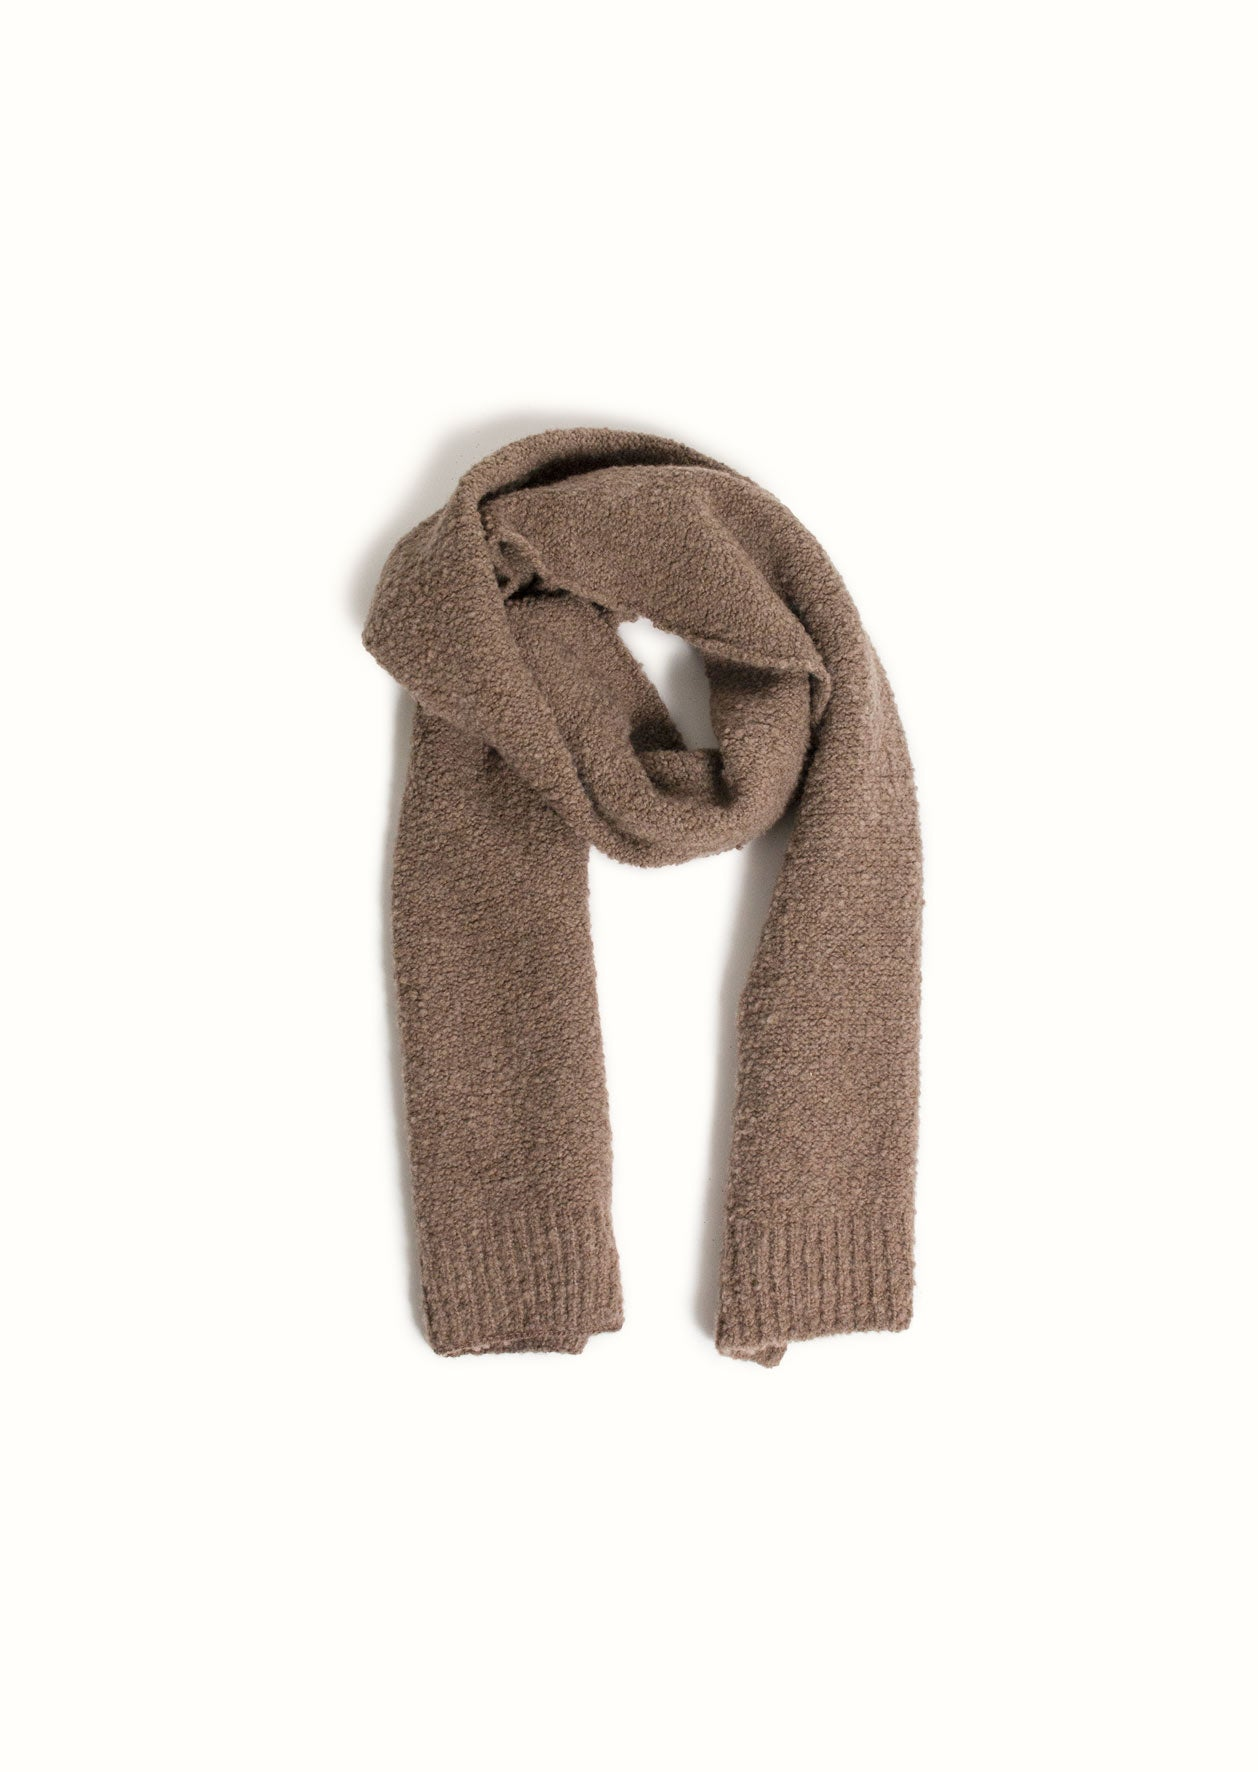 De Bonne Facture - Knitted scarf - Undyed Pecora Nera® wool - Taupe